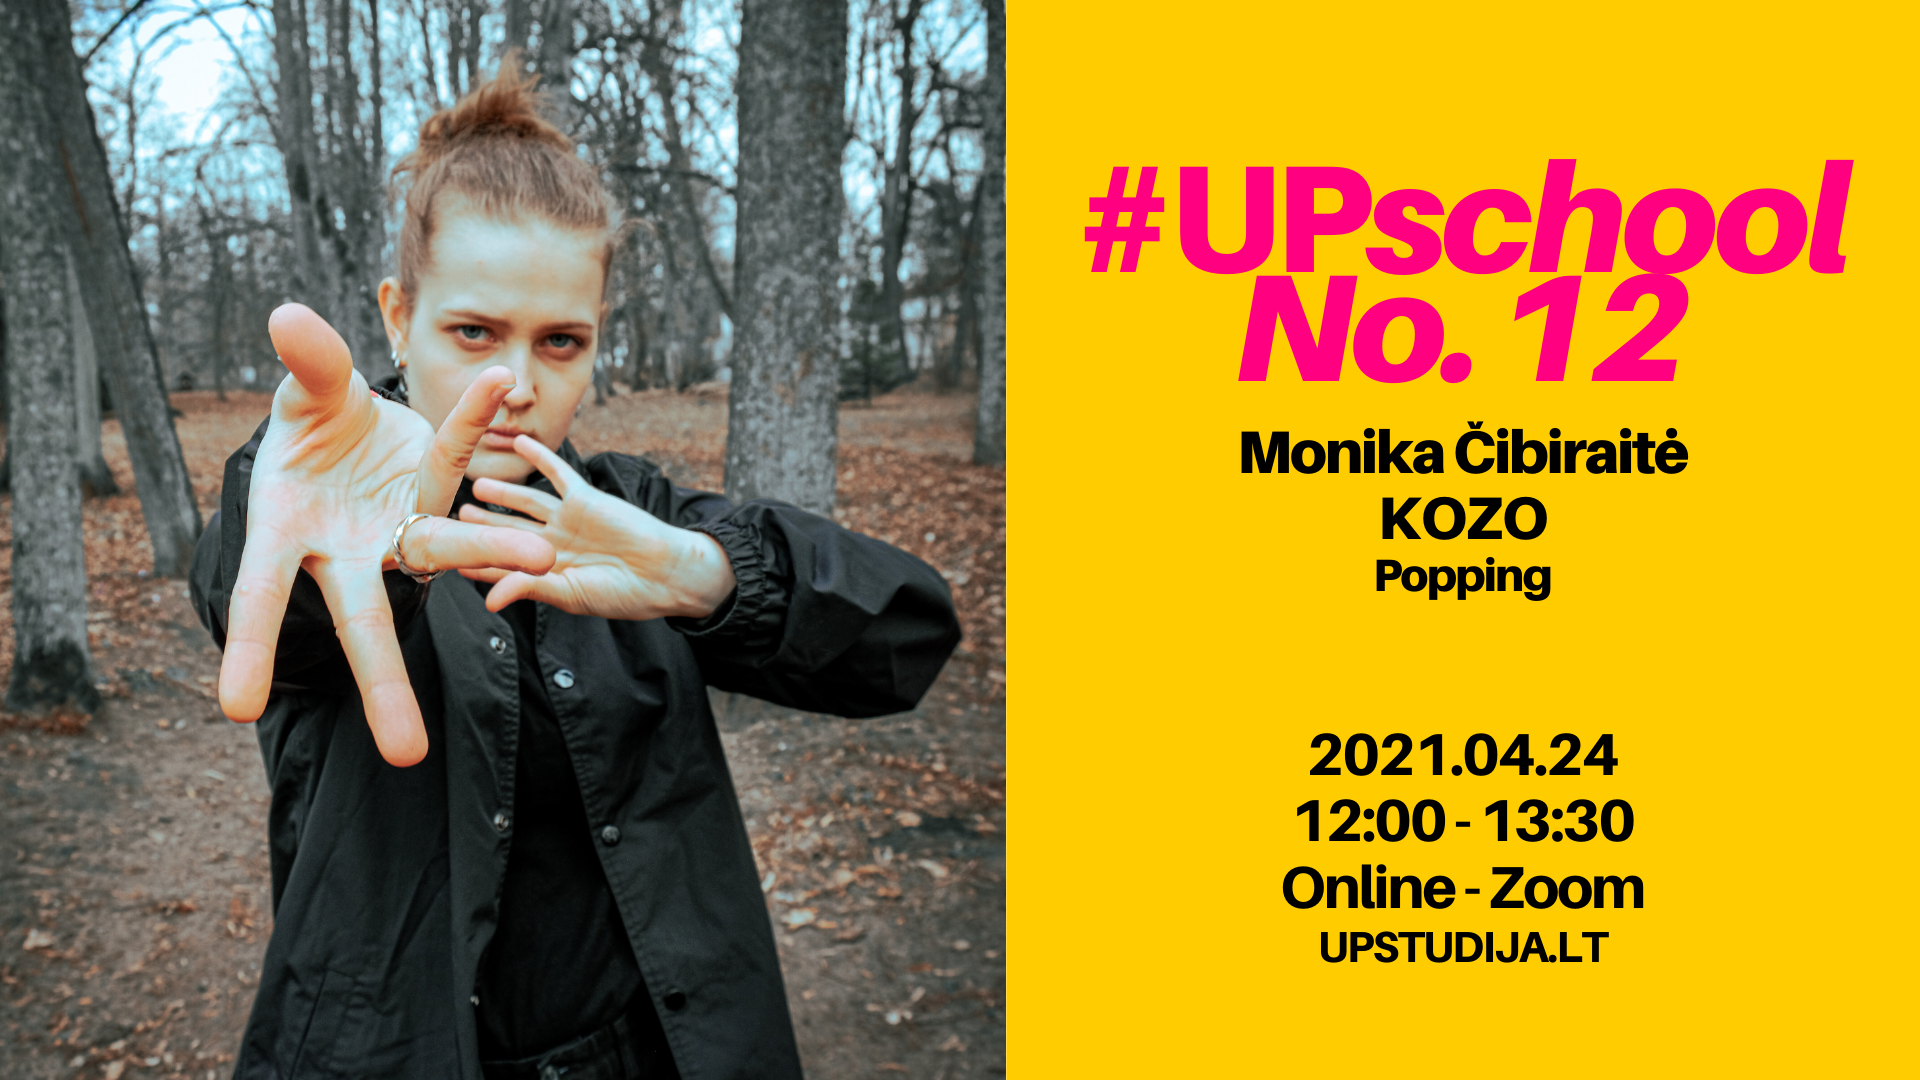 up school su monika cibiraite kozo